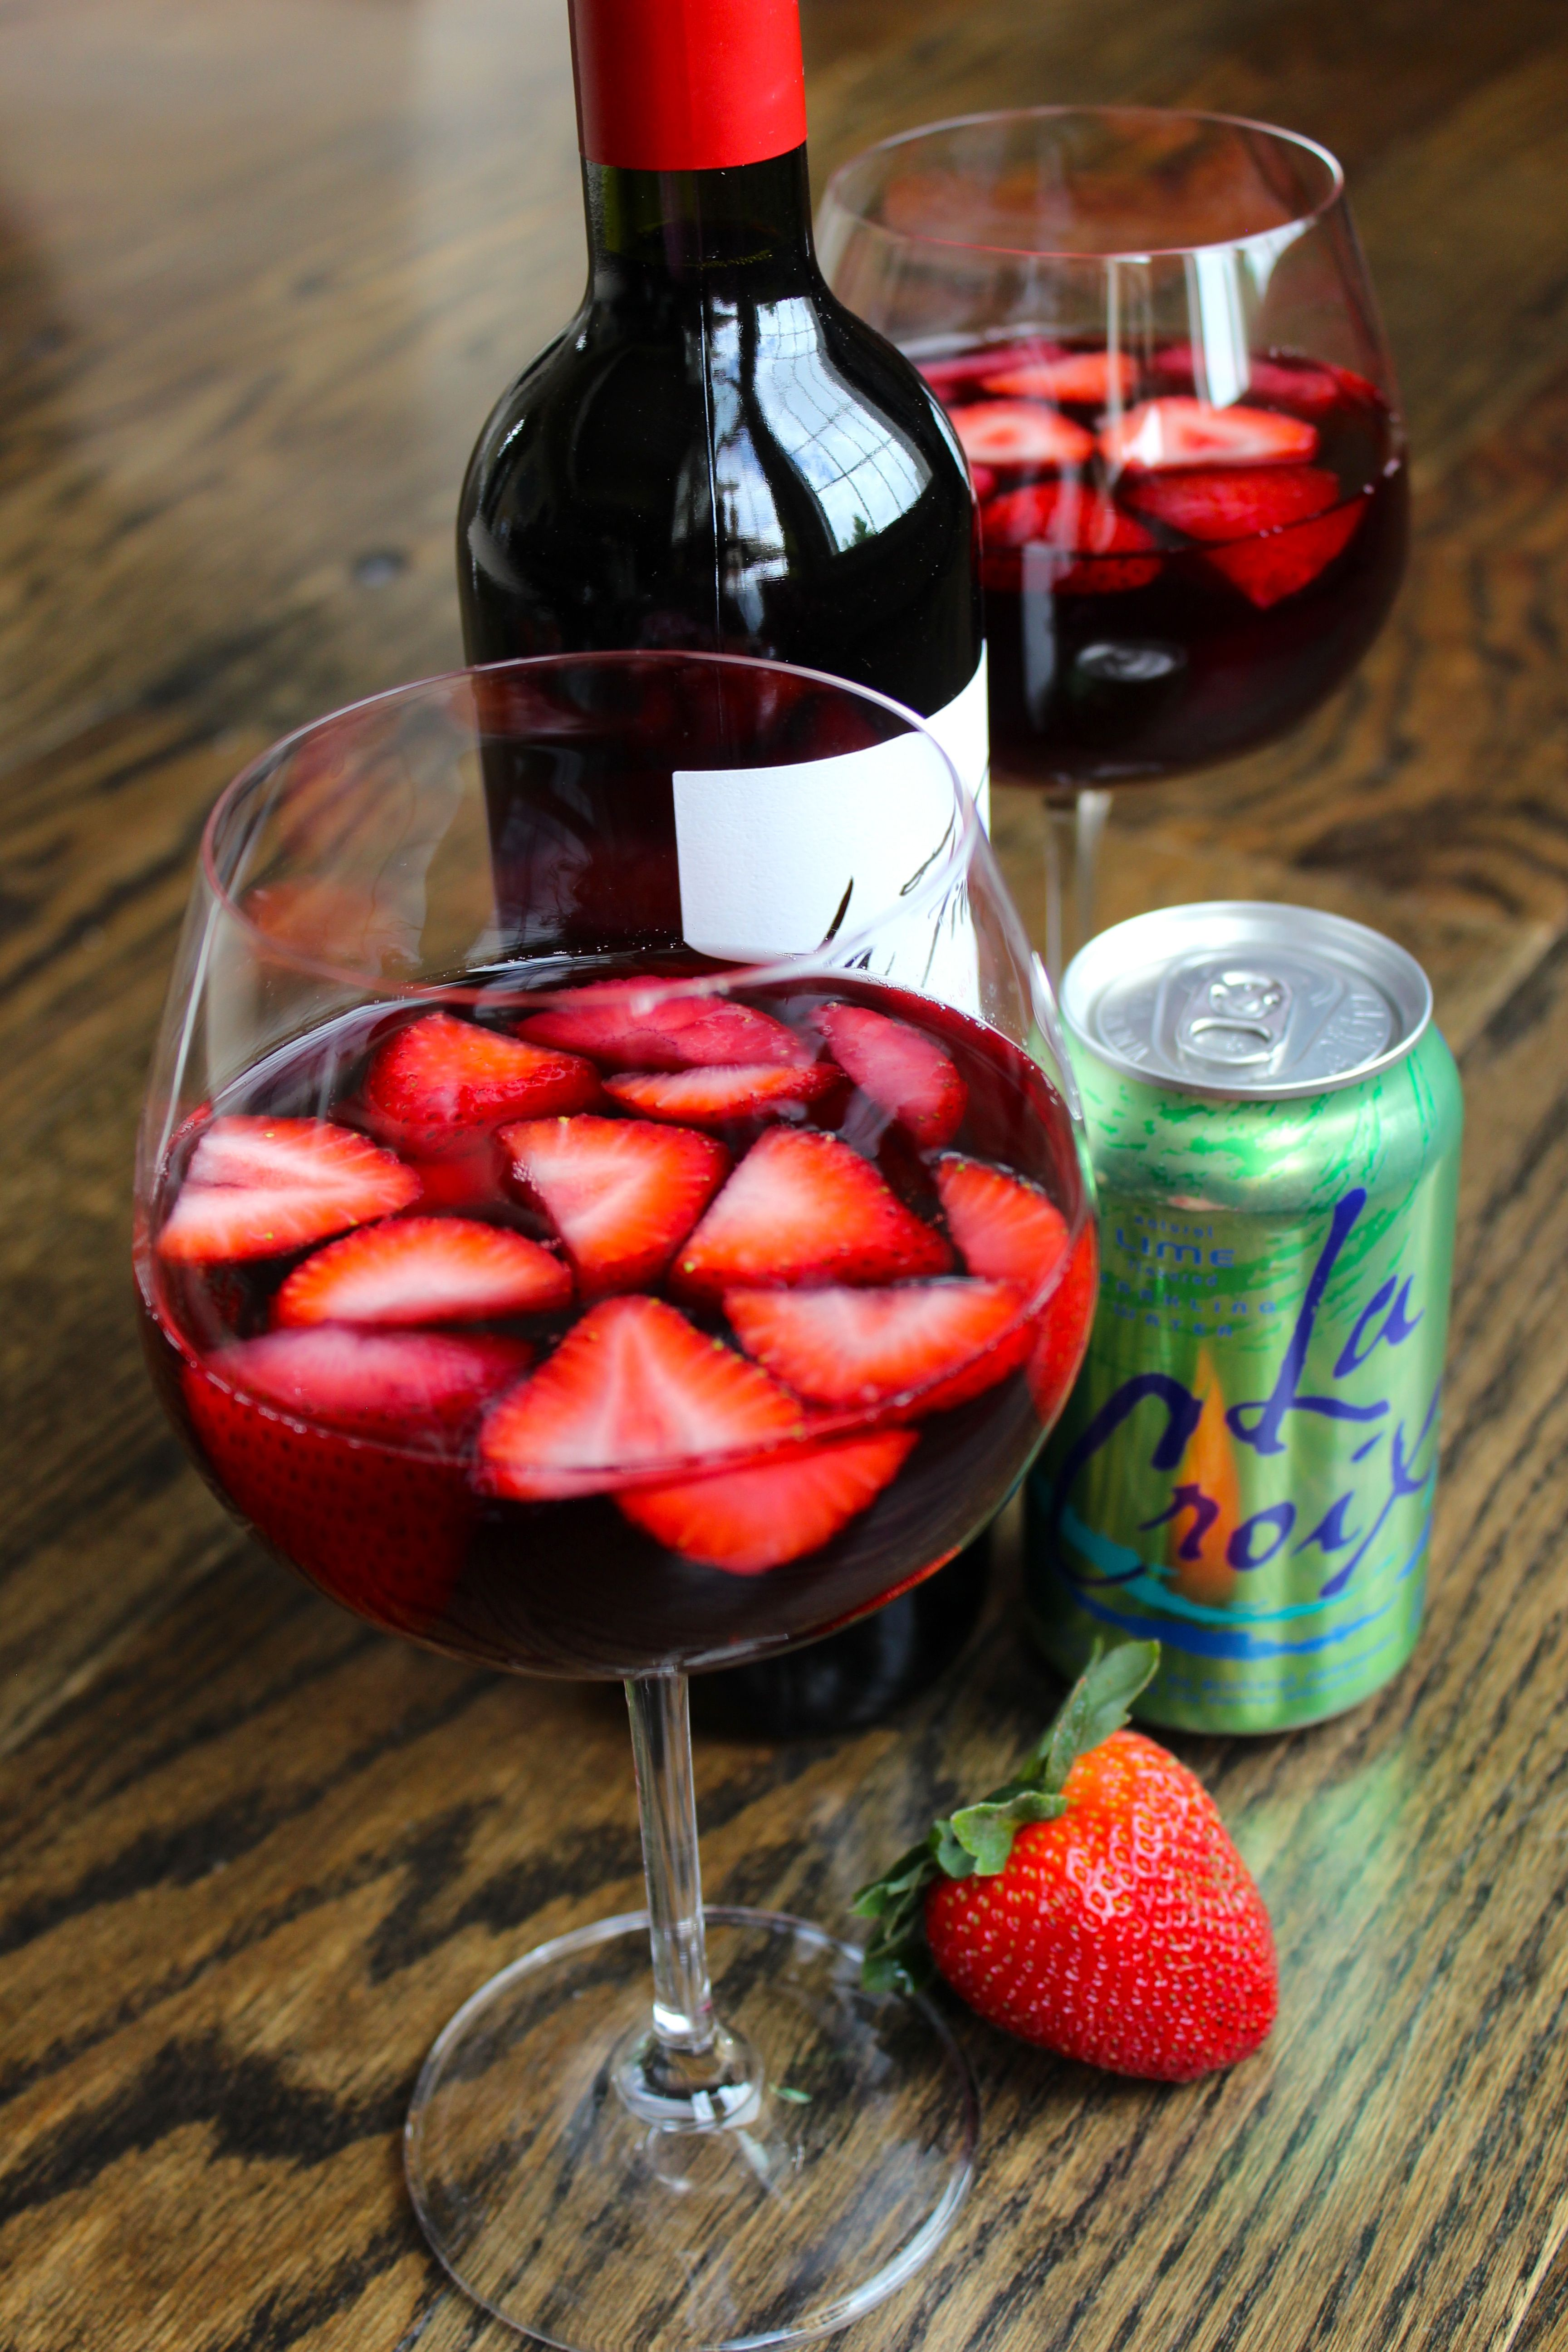 Skinny Strawberry Sangria Mitzi Dulan America S Nutrition Expert Cooks And Dishes In 2020 Strawberry Sangria Food Sangria Recipes